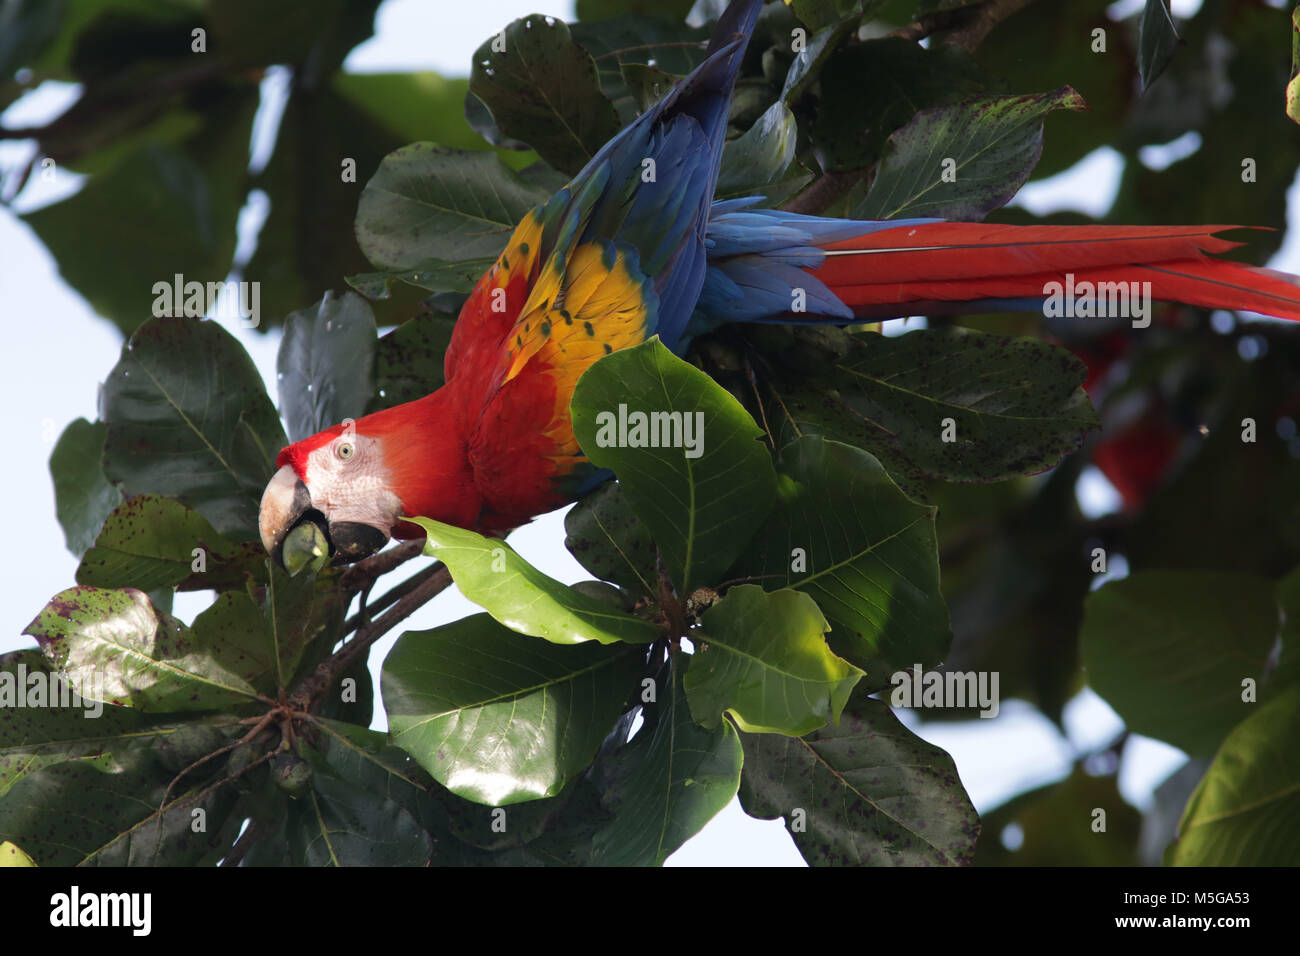 Scarlet Macaws Corcovado National Park Costa Rica - Stock Image